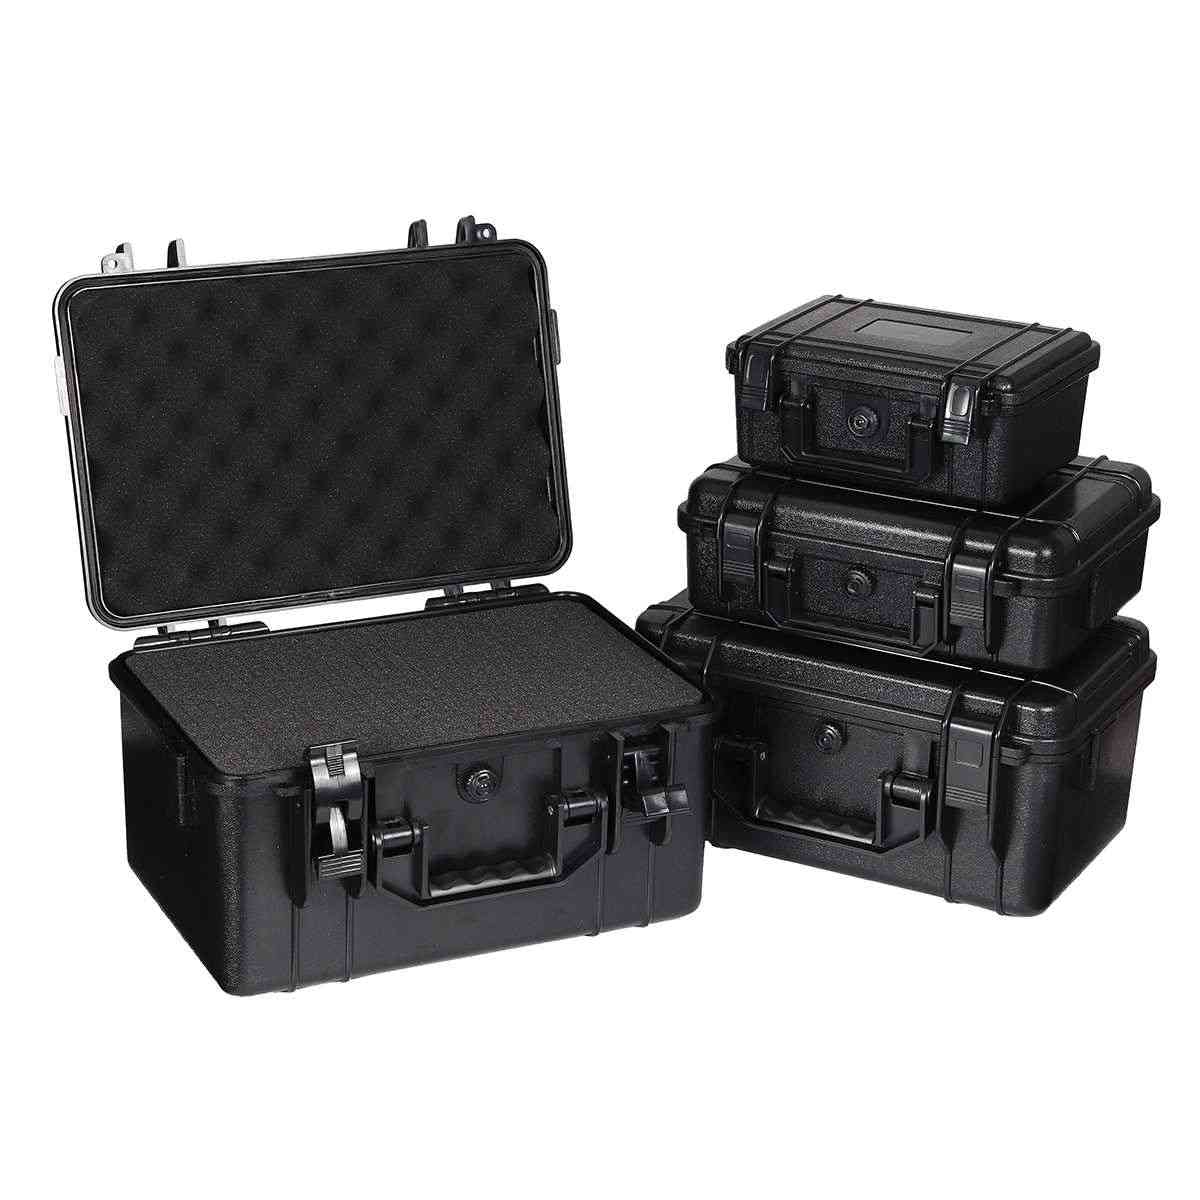 Waterproof Safety Abs Plastic Tool Box - Outdoor Tactical Equipment Storage Container